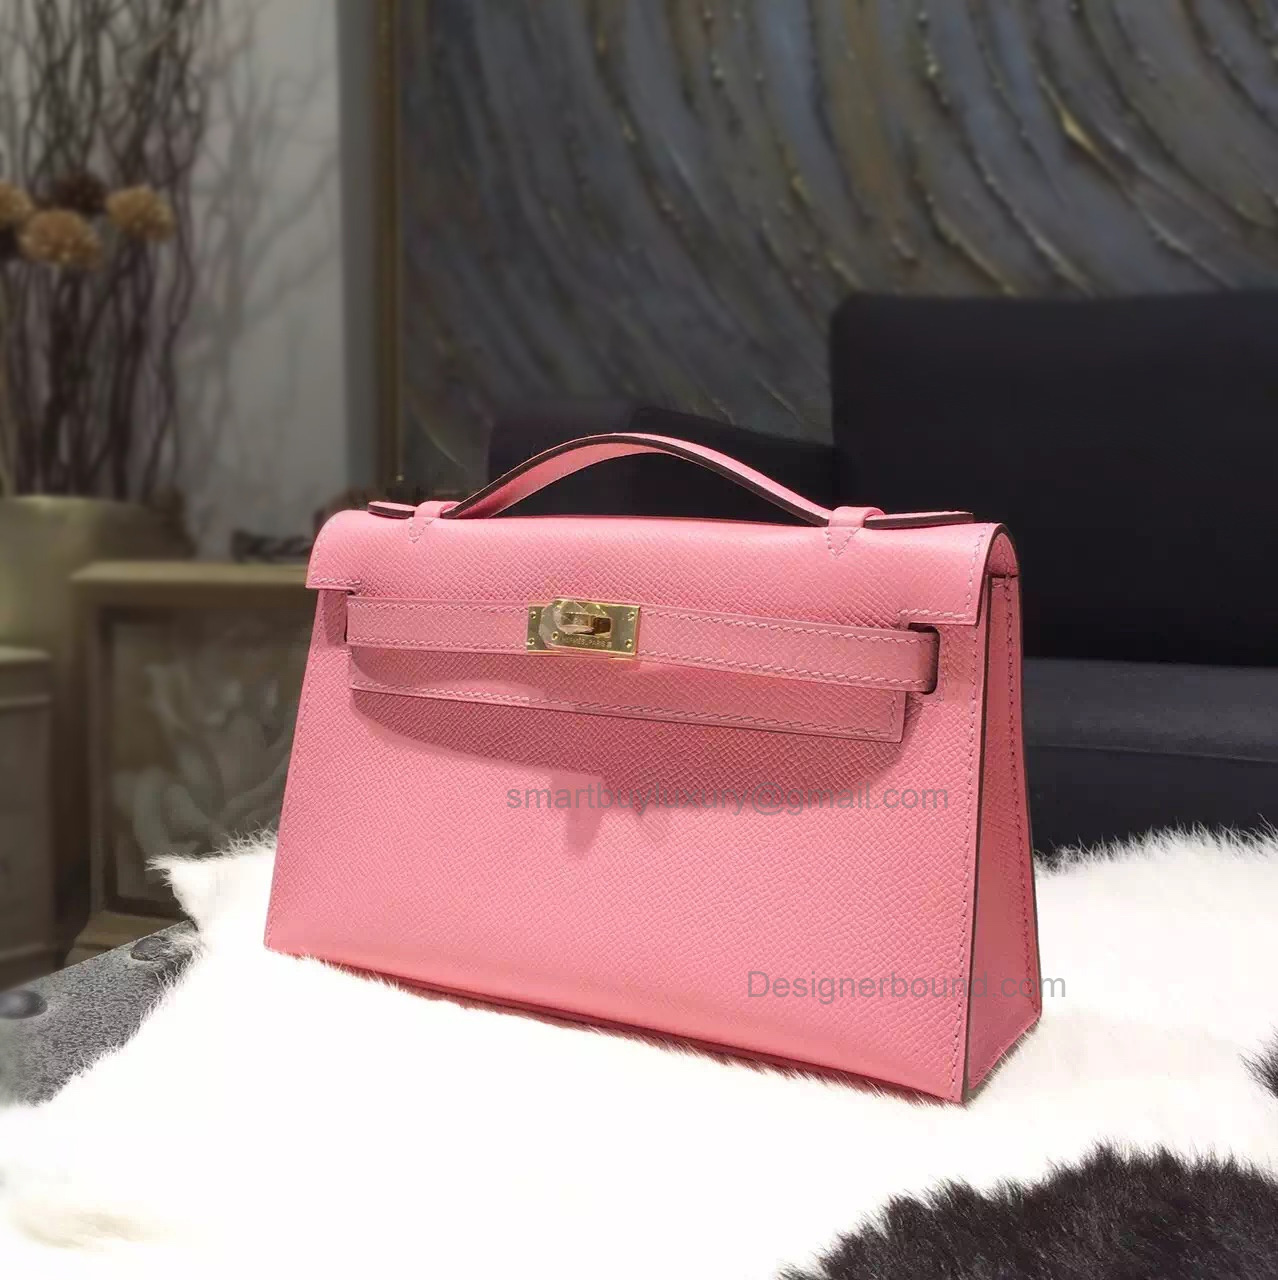 Fake Hermes Mini Kelly 22 Pochette Bag in 1q Rose Confetti Epsom Calfskin GHW